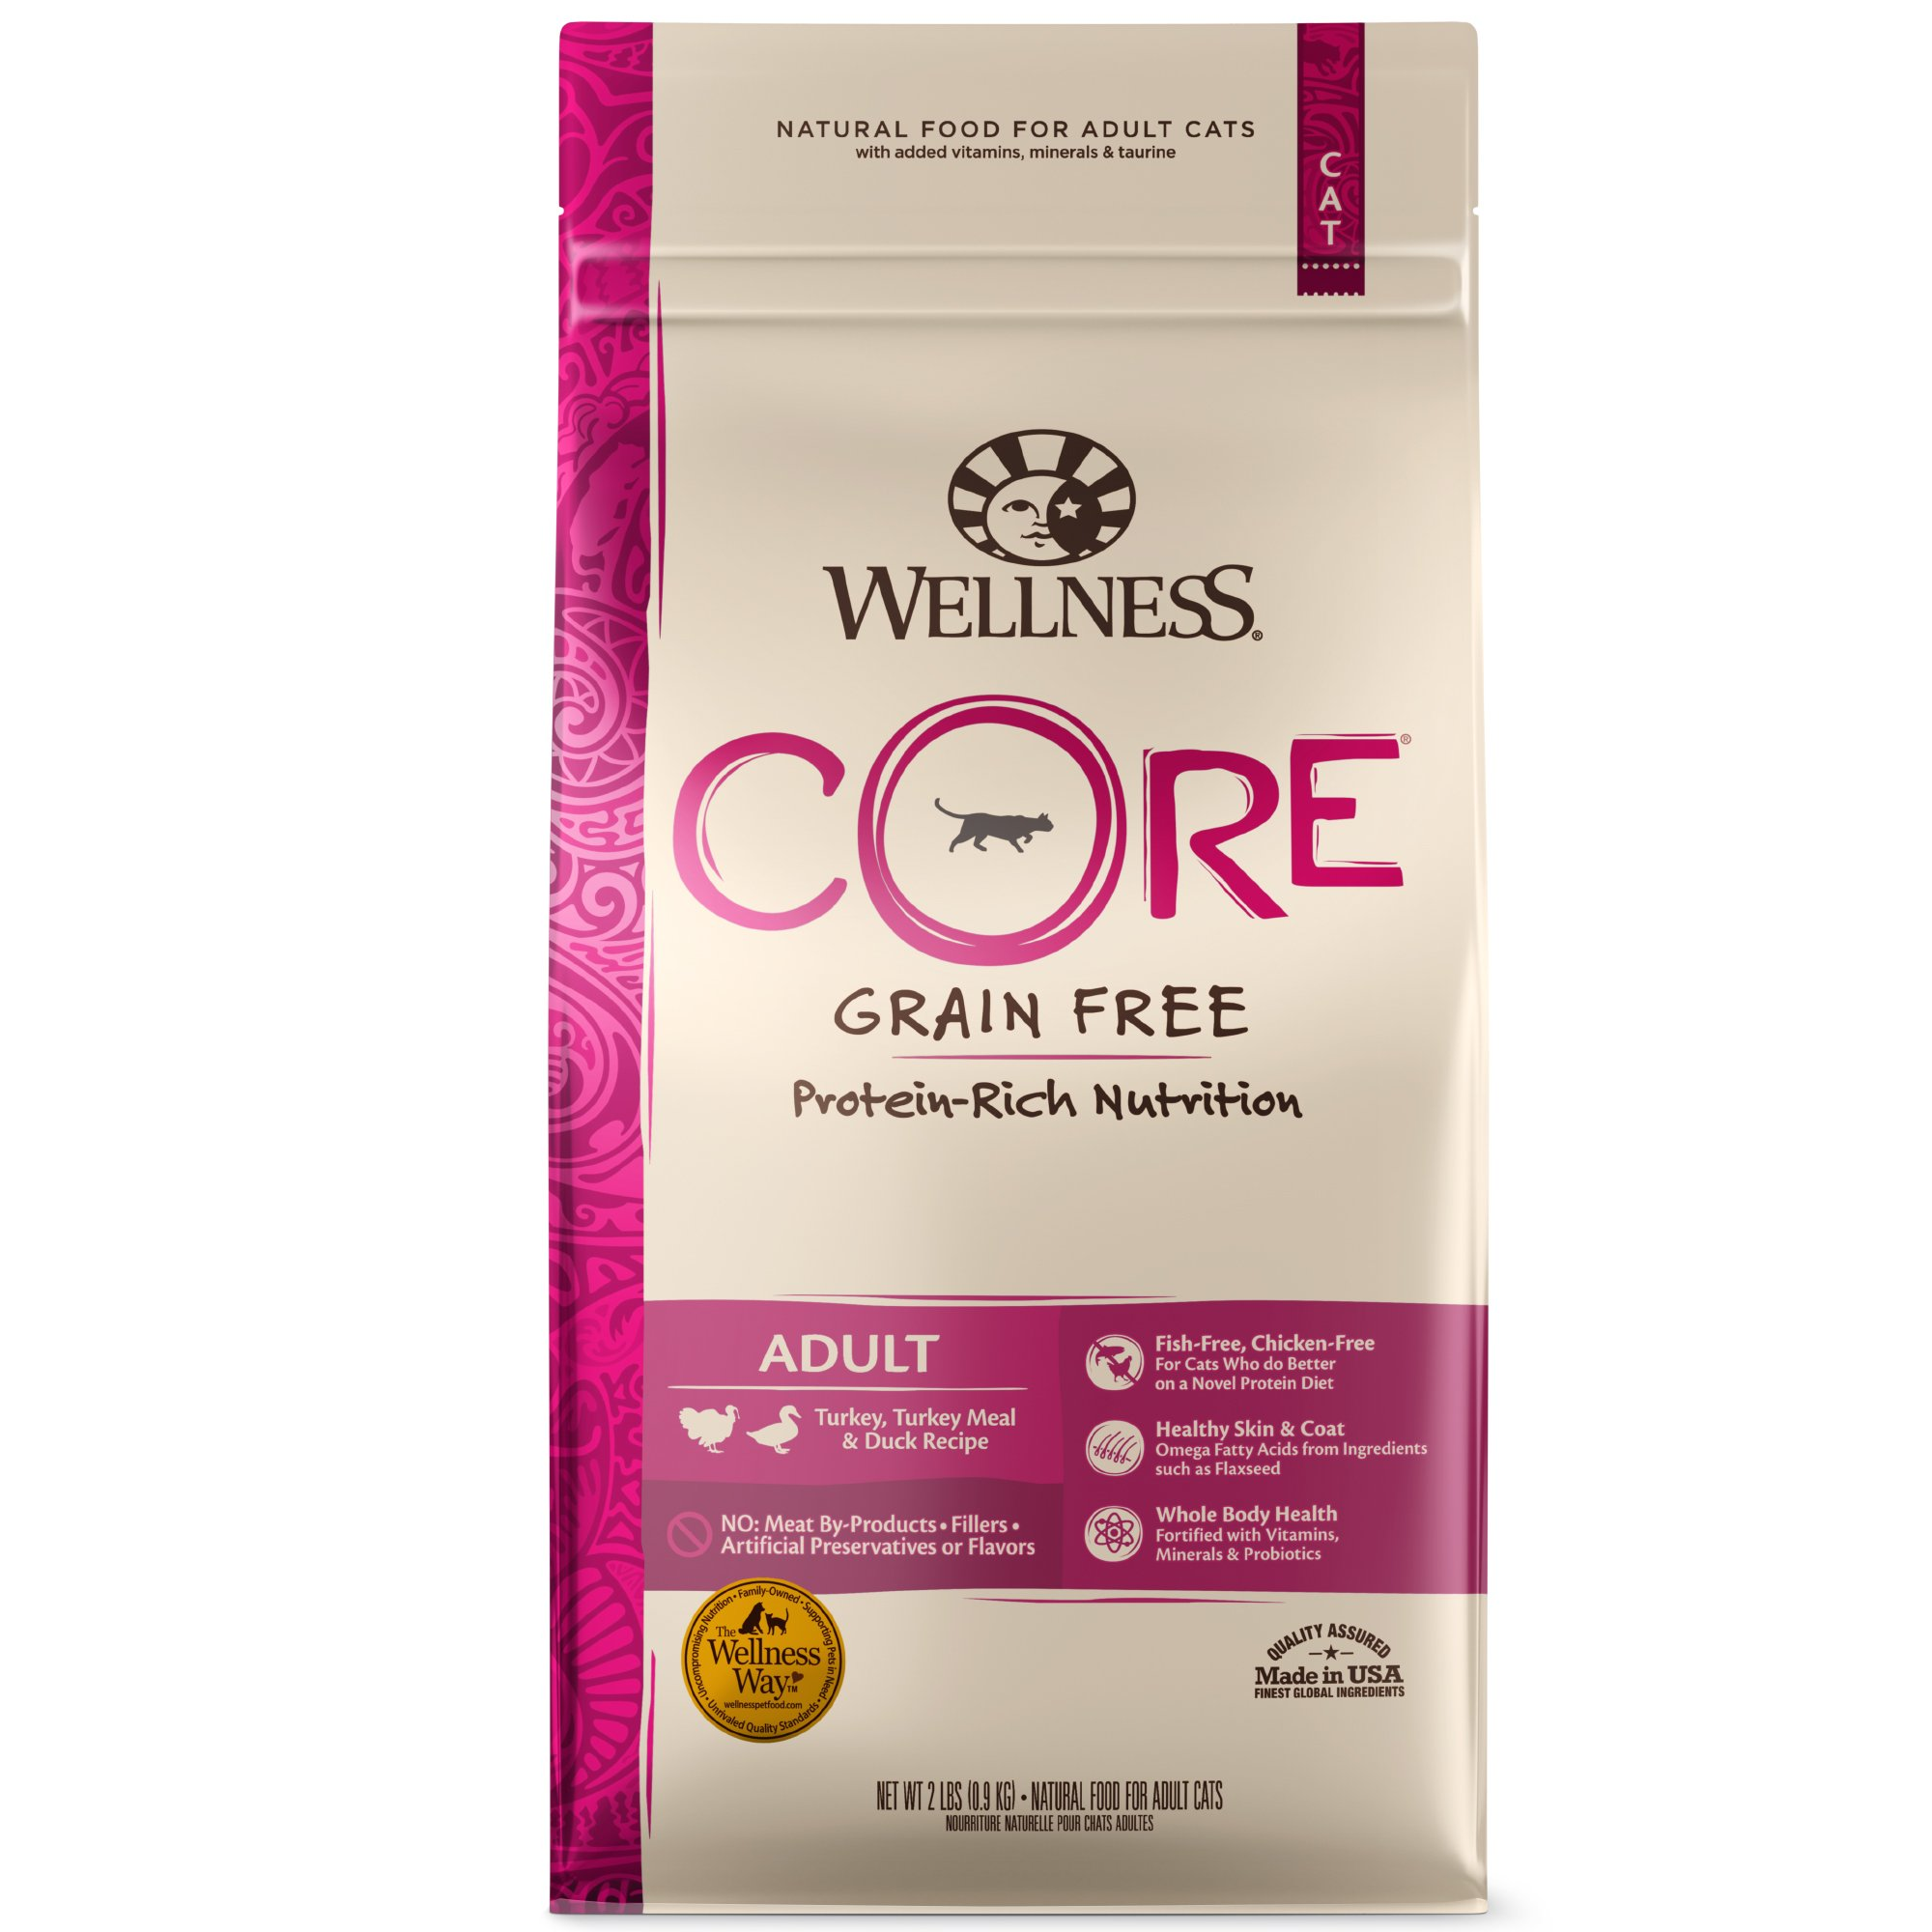 Wellness Core Natural Grain Free Dry Cat Food, Turkey, Turkey Meal & Duck Recipe, 11-Pound Bag by WELLNESS CORE